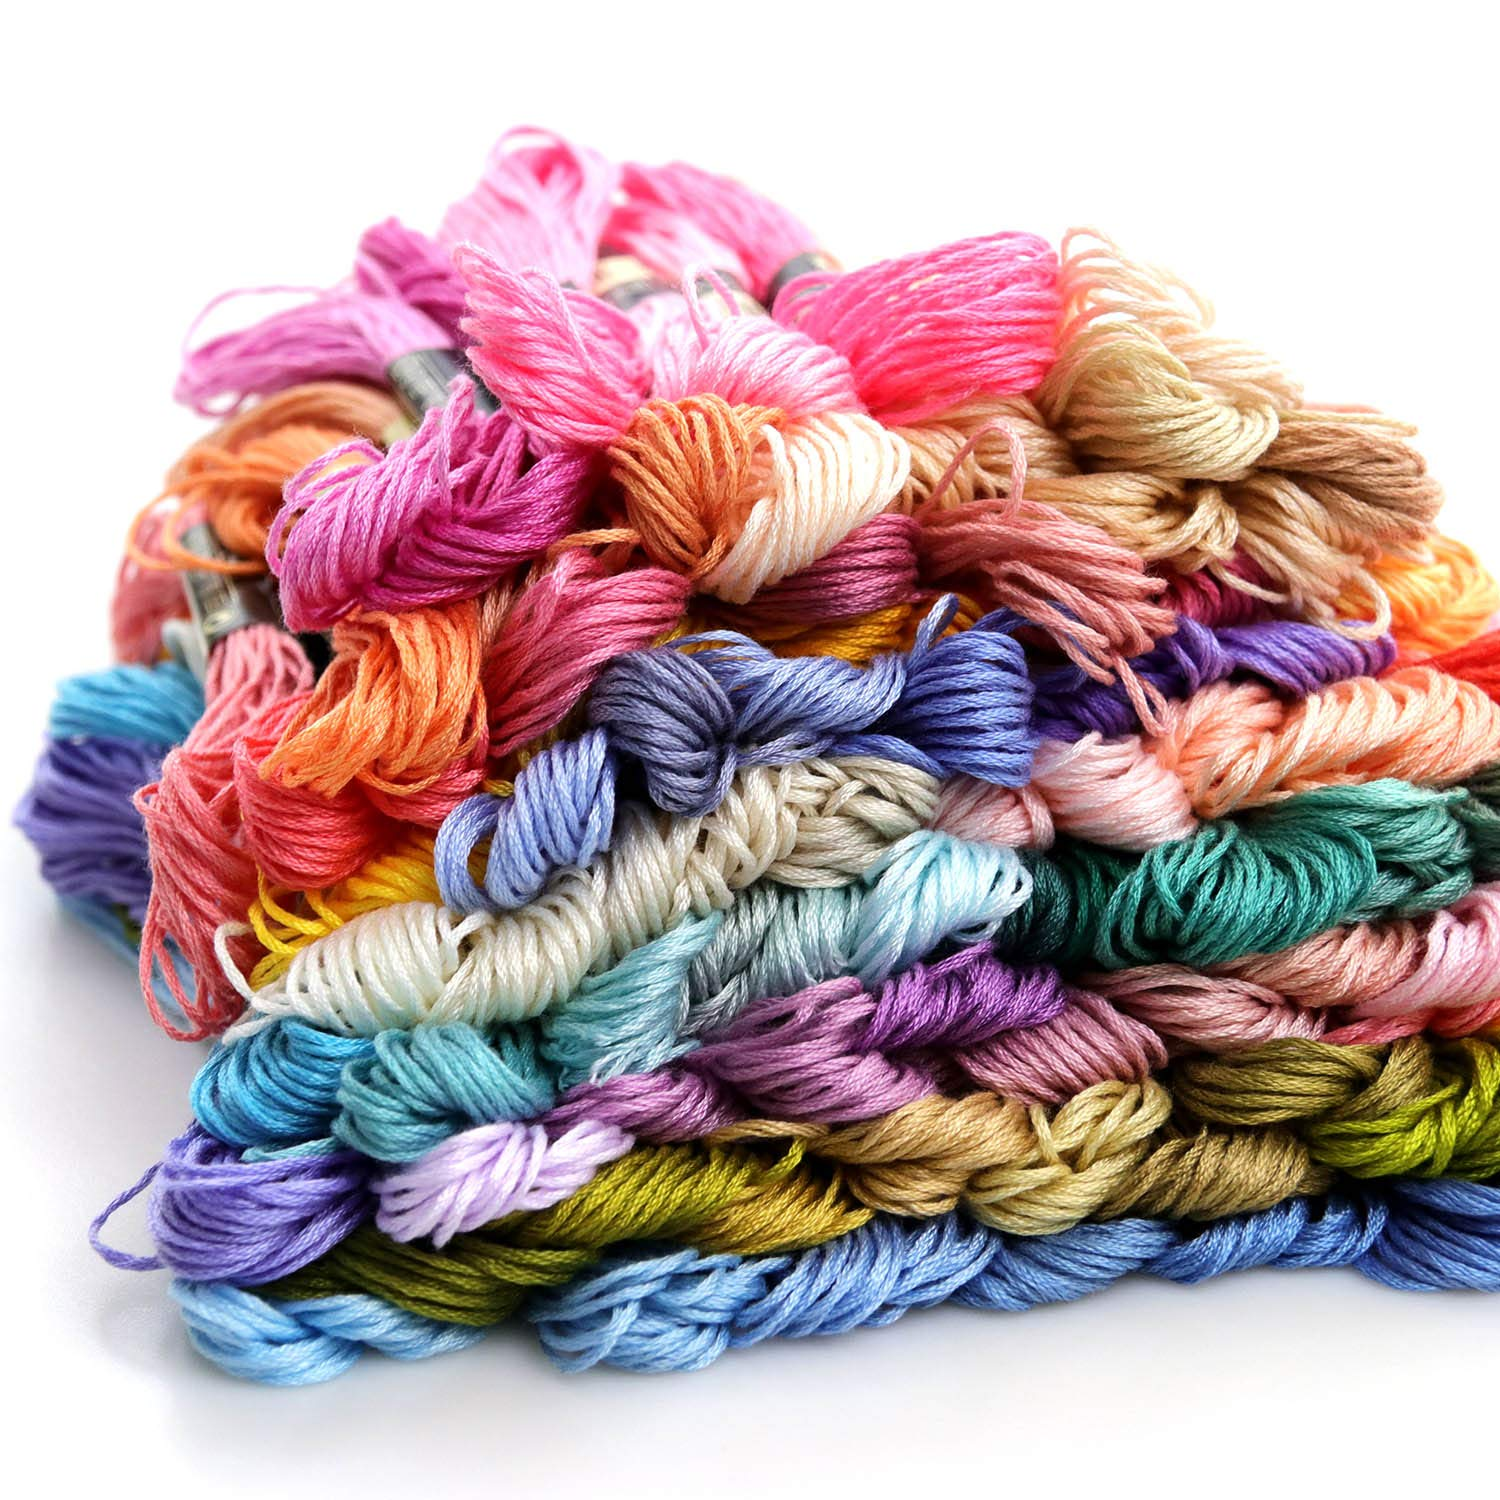 Premium Rainbow Color Embroidery Floss 210 Skeins Per Pack with Cotton for Cross Stitch Threads Bracelet Yarn Floss Craft Floss